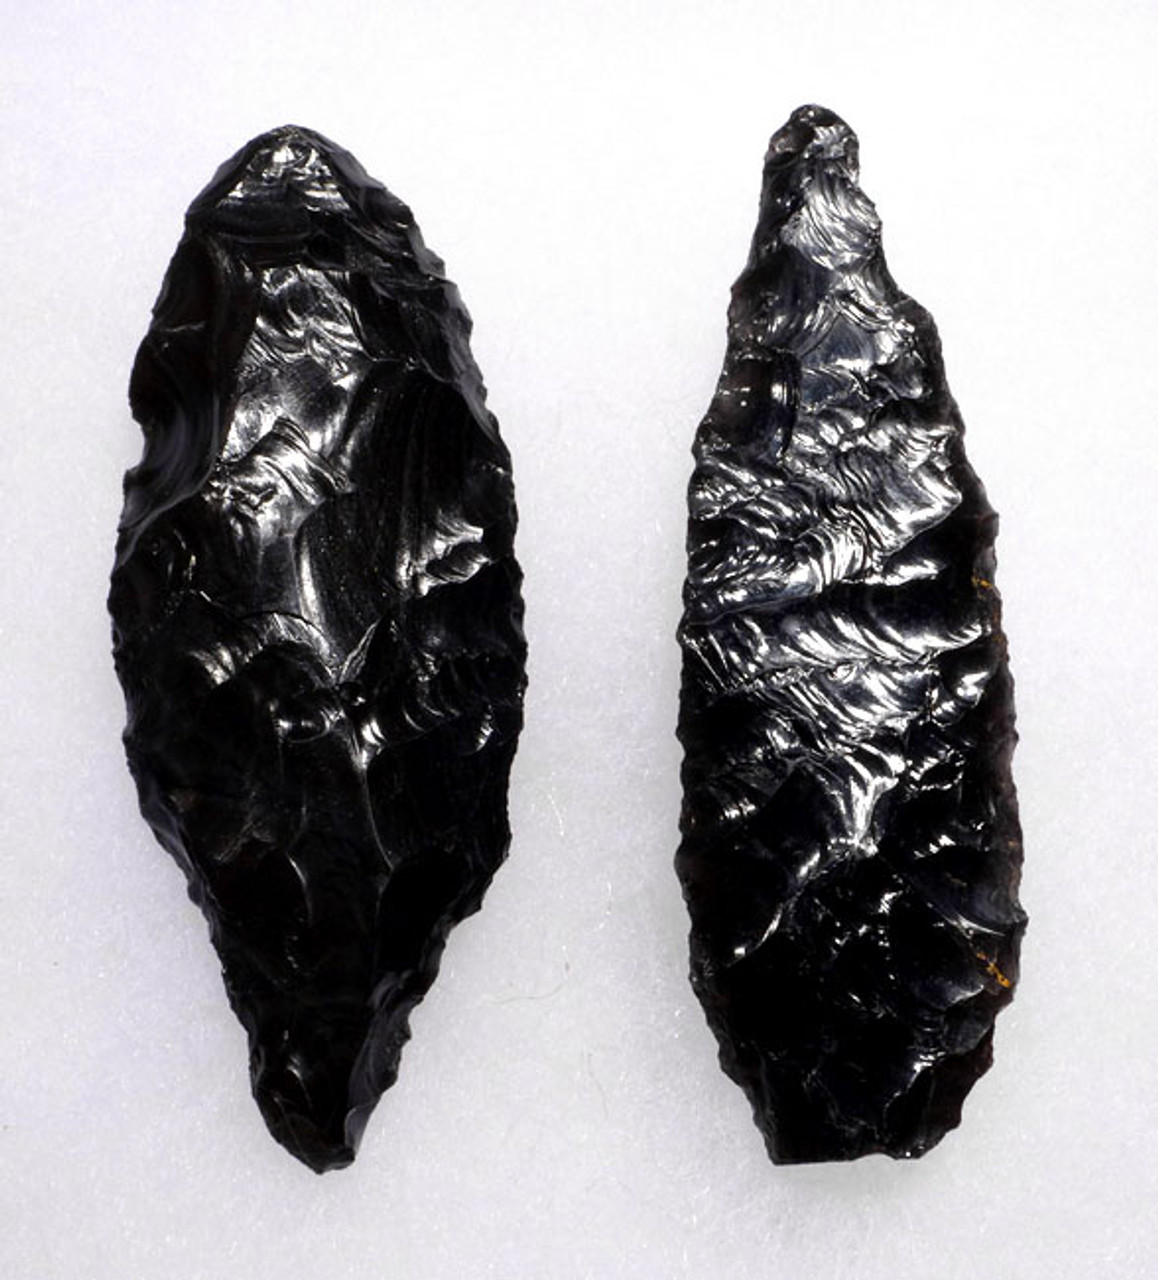 PC214 - CHOICE GRADE SET OF 2 LARGE ATLATL PRE-COLUMBIAN OBSIDIAN SPEARHEADS OF DIFFERENT DESIGNS